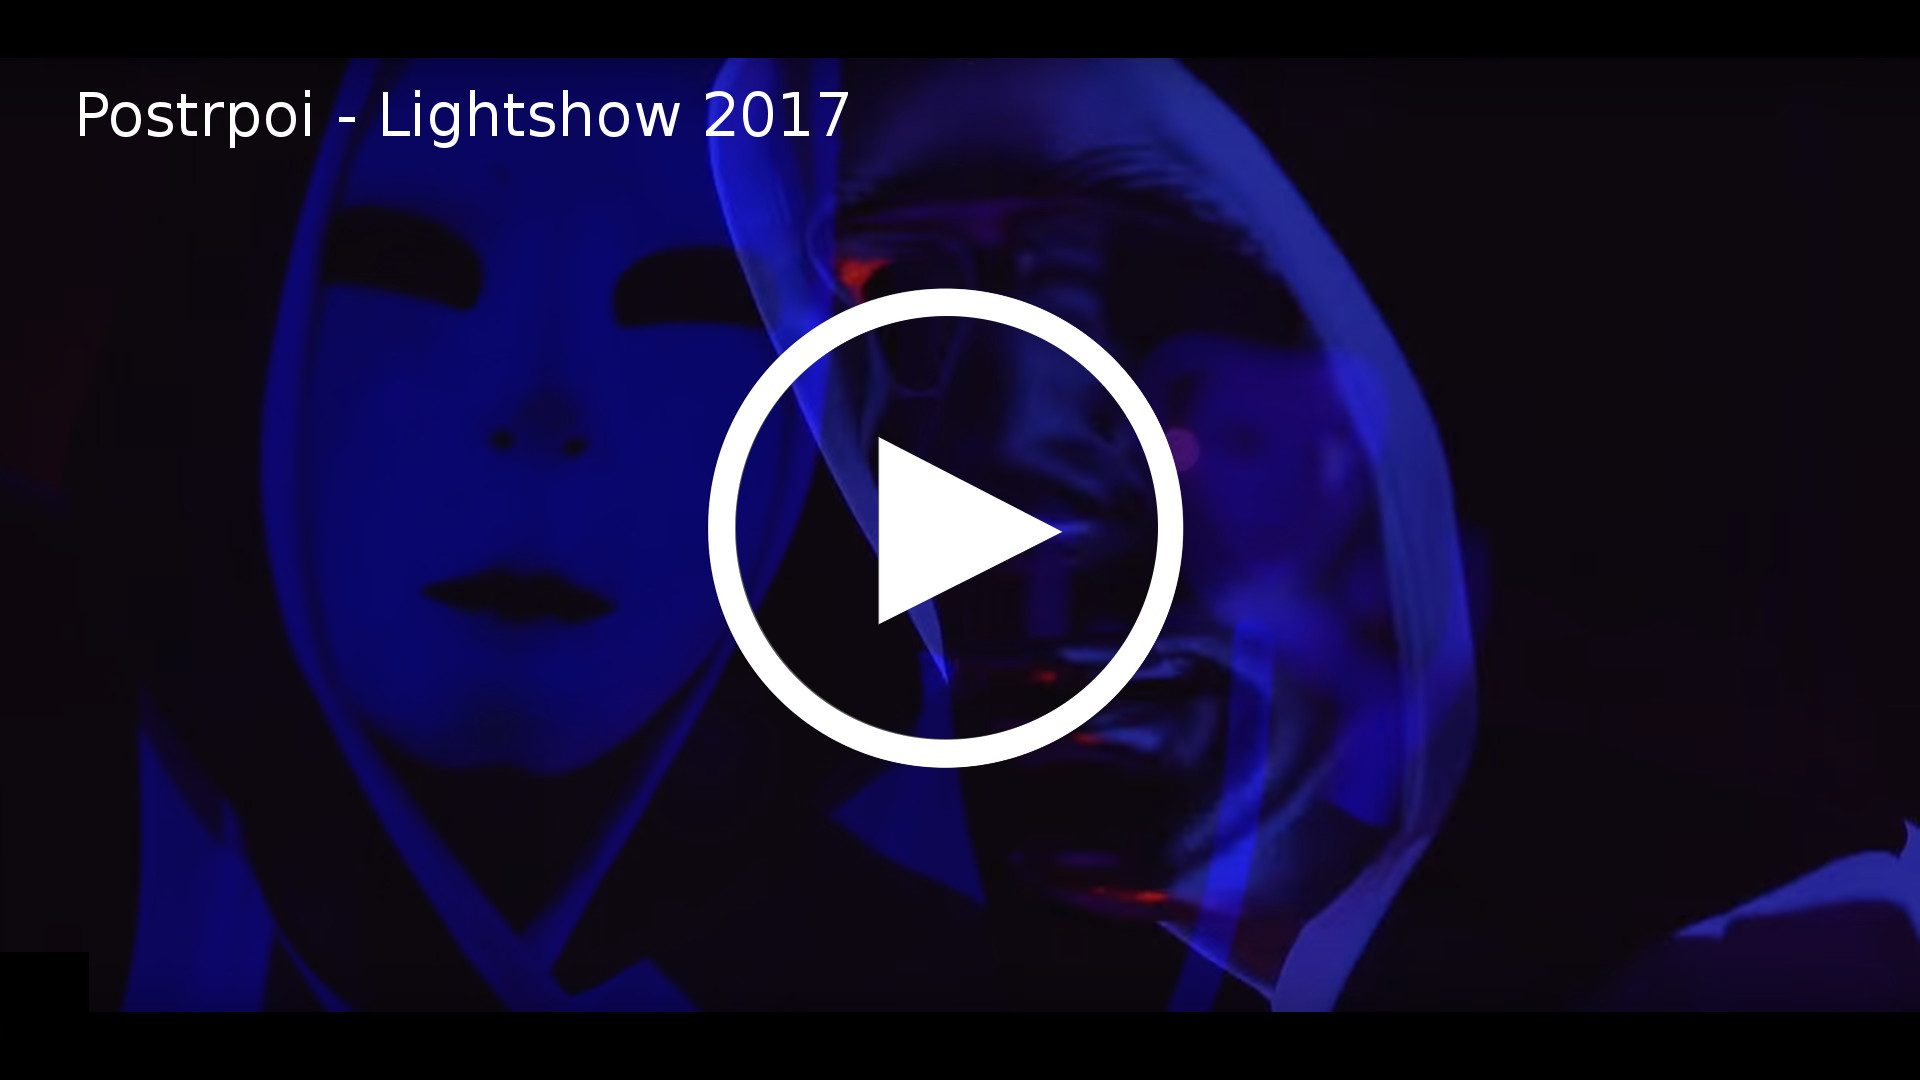 led show, laser show, uv show - skupina Postrpoi promo video